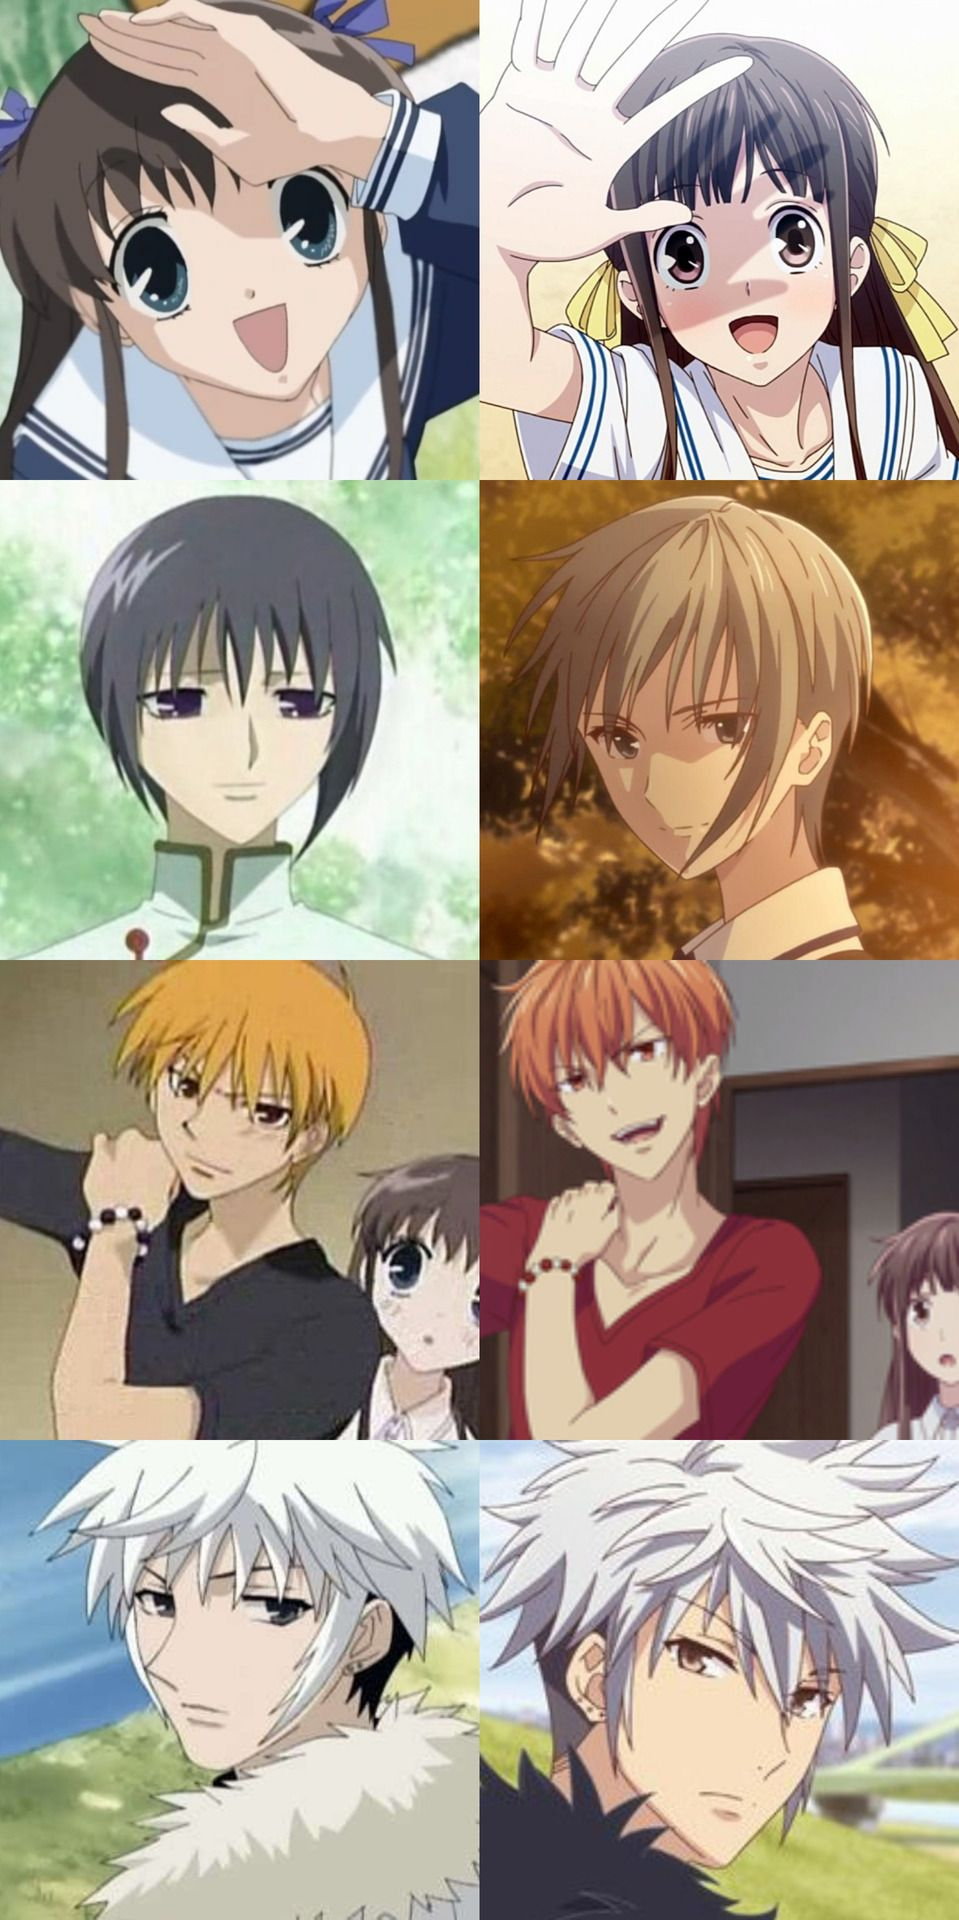 Fruits Basket (2001) // Fruits Basket (2019) Tohru Honda